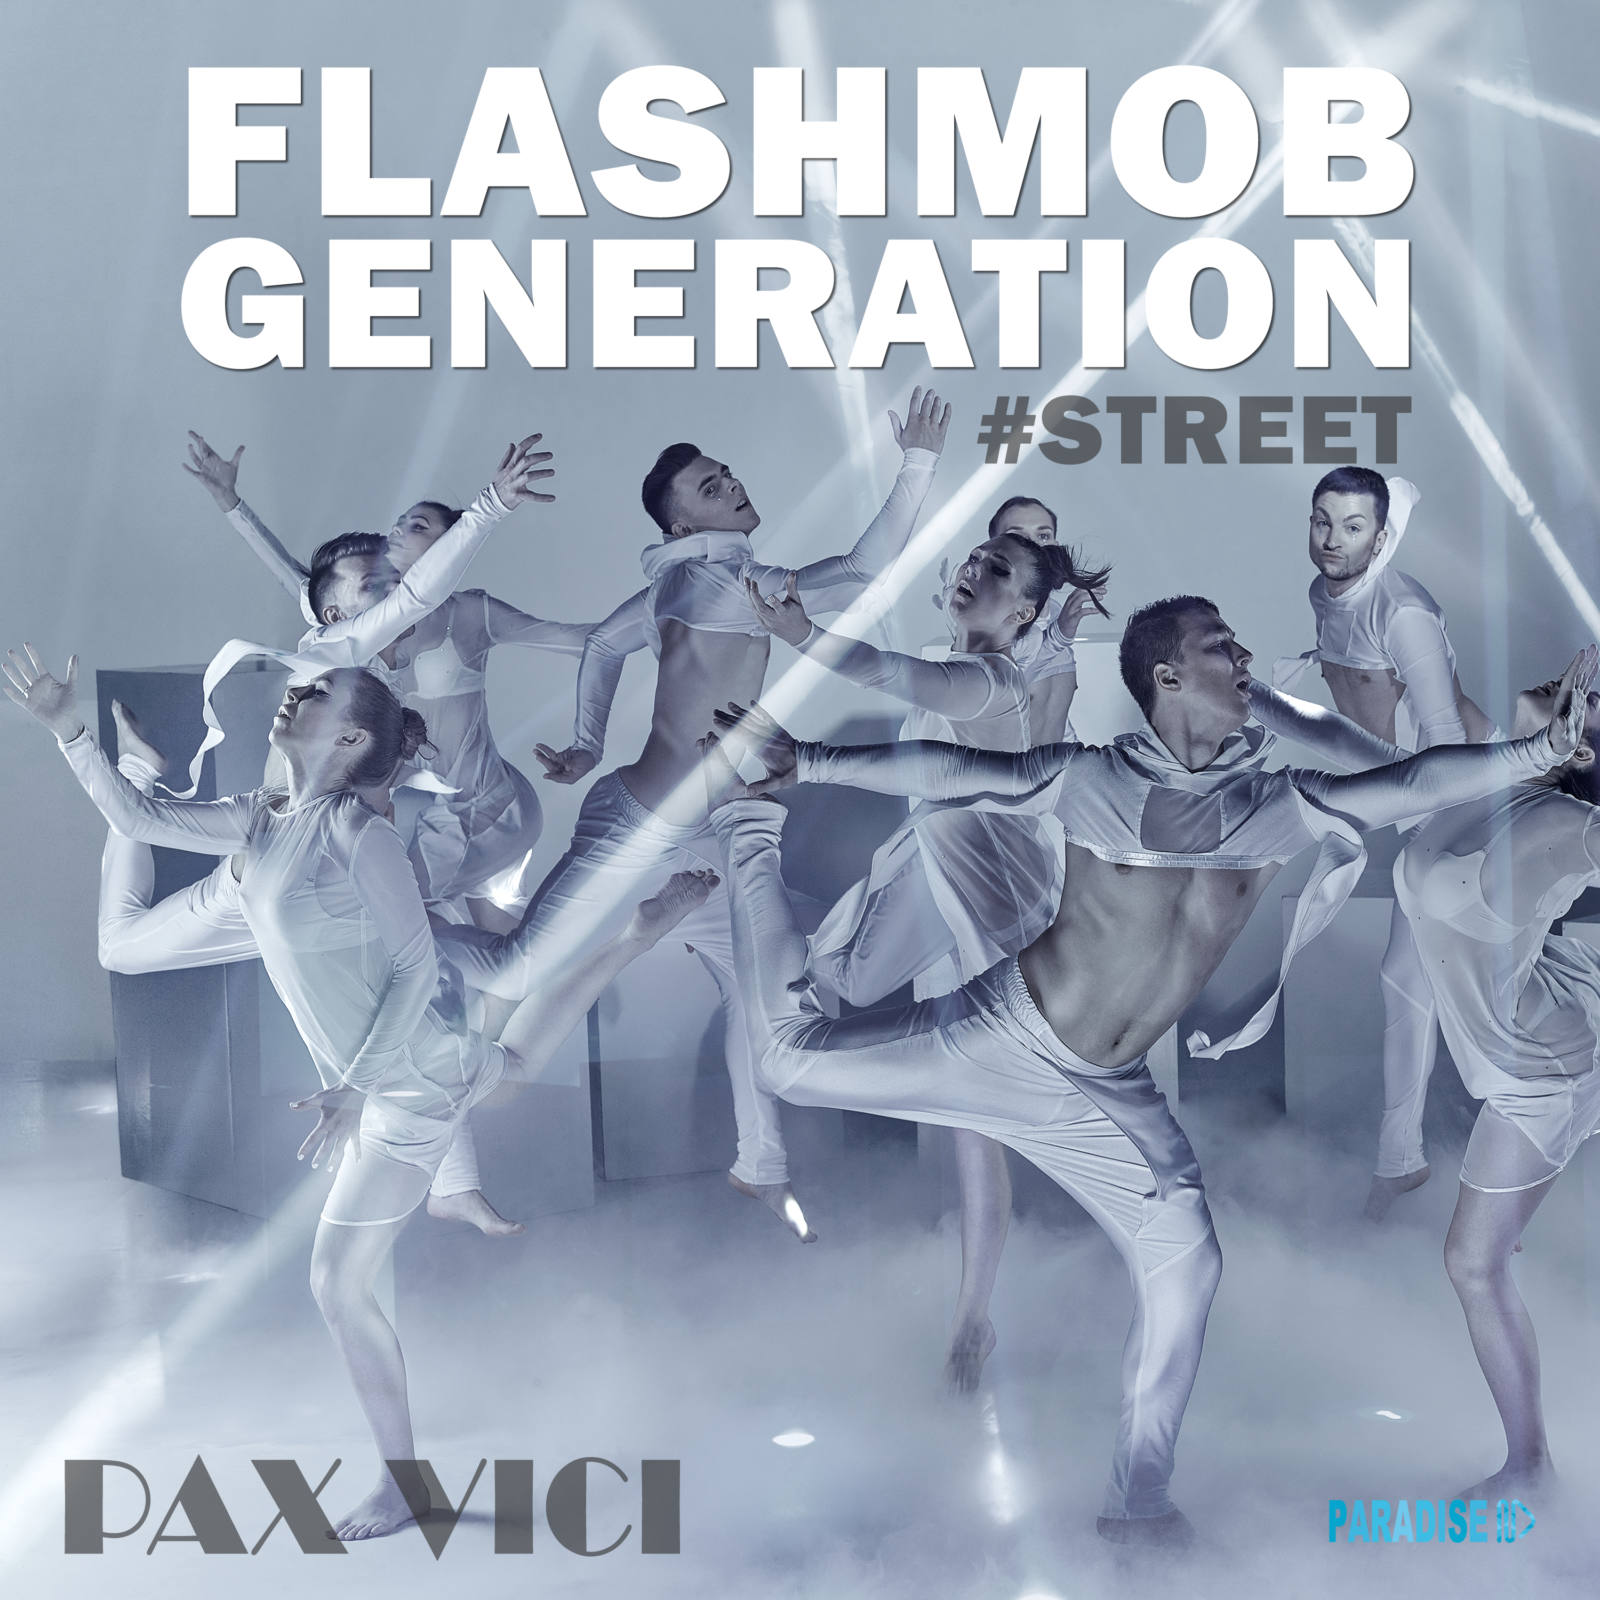 Flashmob Generation #street, A song by Pax Vici